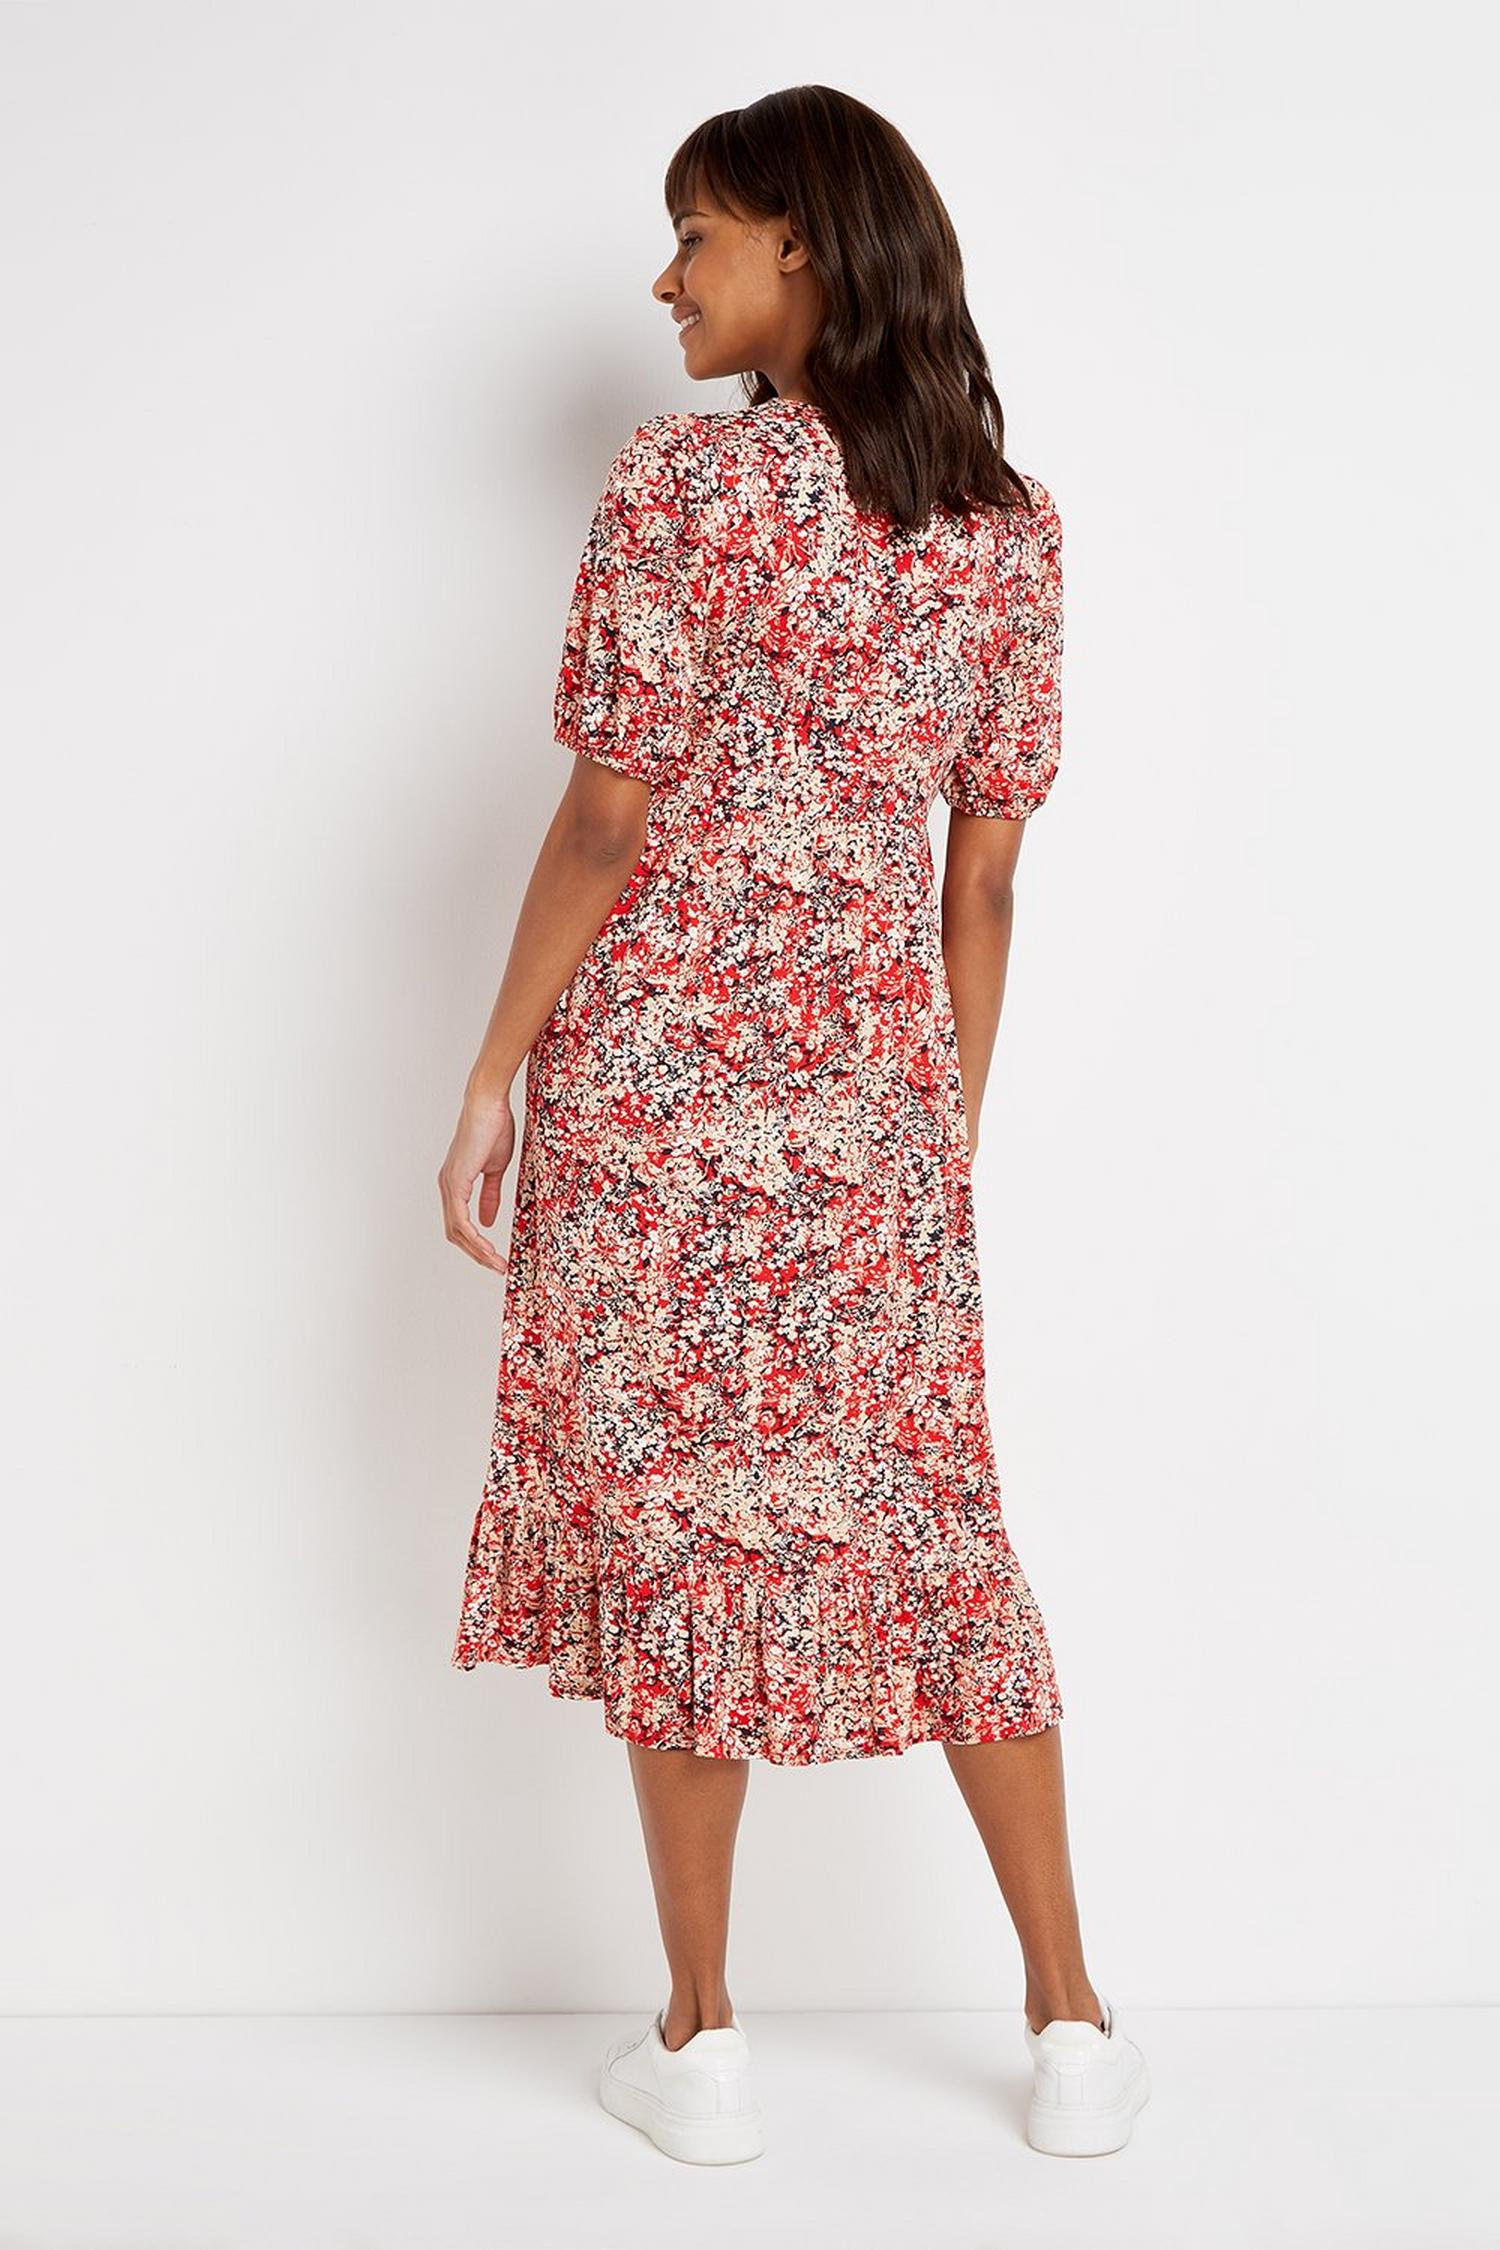 157 TALL Red Floral Print Midi Dress image number 3